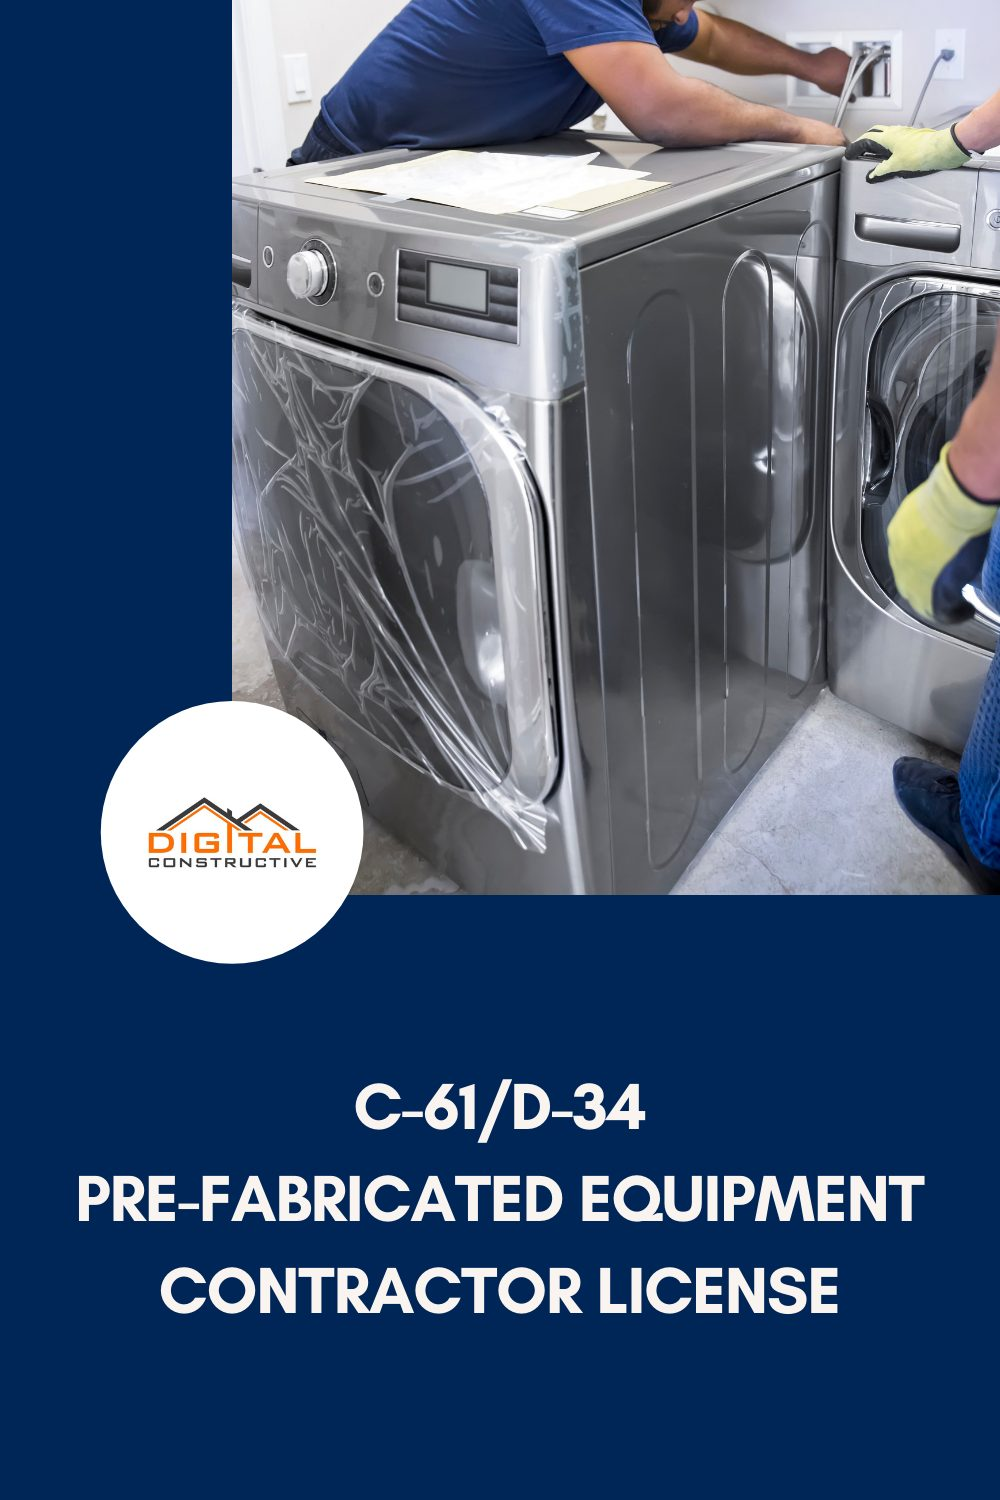 What kinds of jobs can you do with a C-61 contractors license for pre-fabricated equipment installation in California